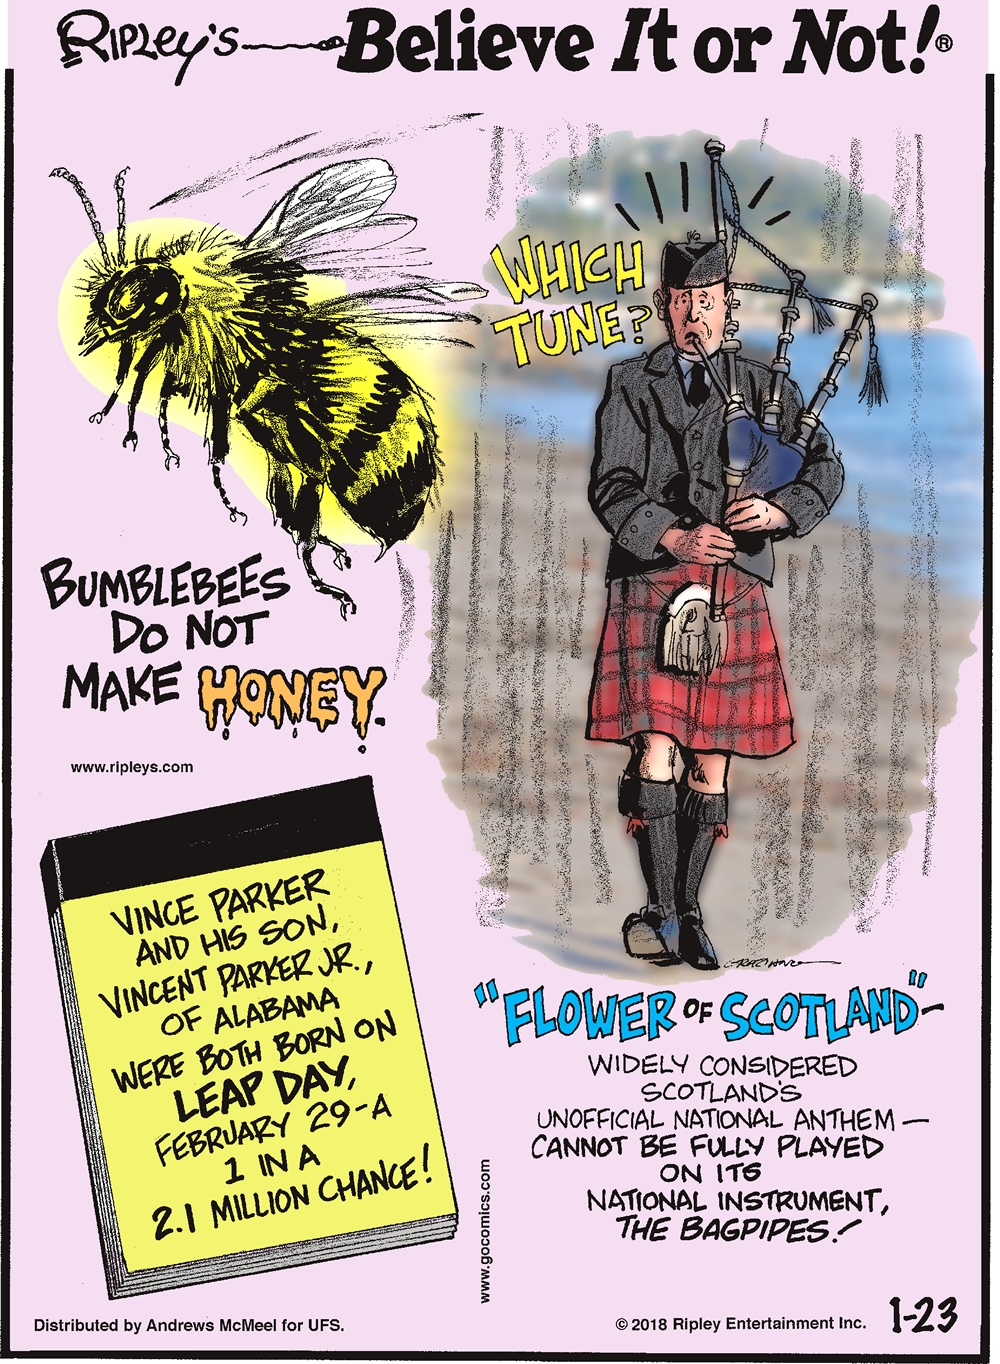 "Bumblebees do not make honey.-------------------- Vince Parker and his son, Vincent Parker JR., of Alabama were both born on Leap Day, February 29 - a 1 in a 2.1 million chance!-------------------- ""Flower of Scotland"" - widely considered Scotland's unofficial national anthem - cannot be fully played on its national instrument, the bagpipes!"